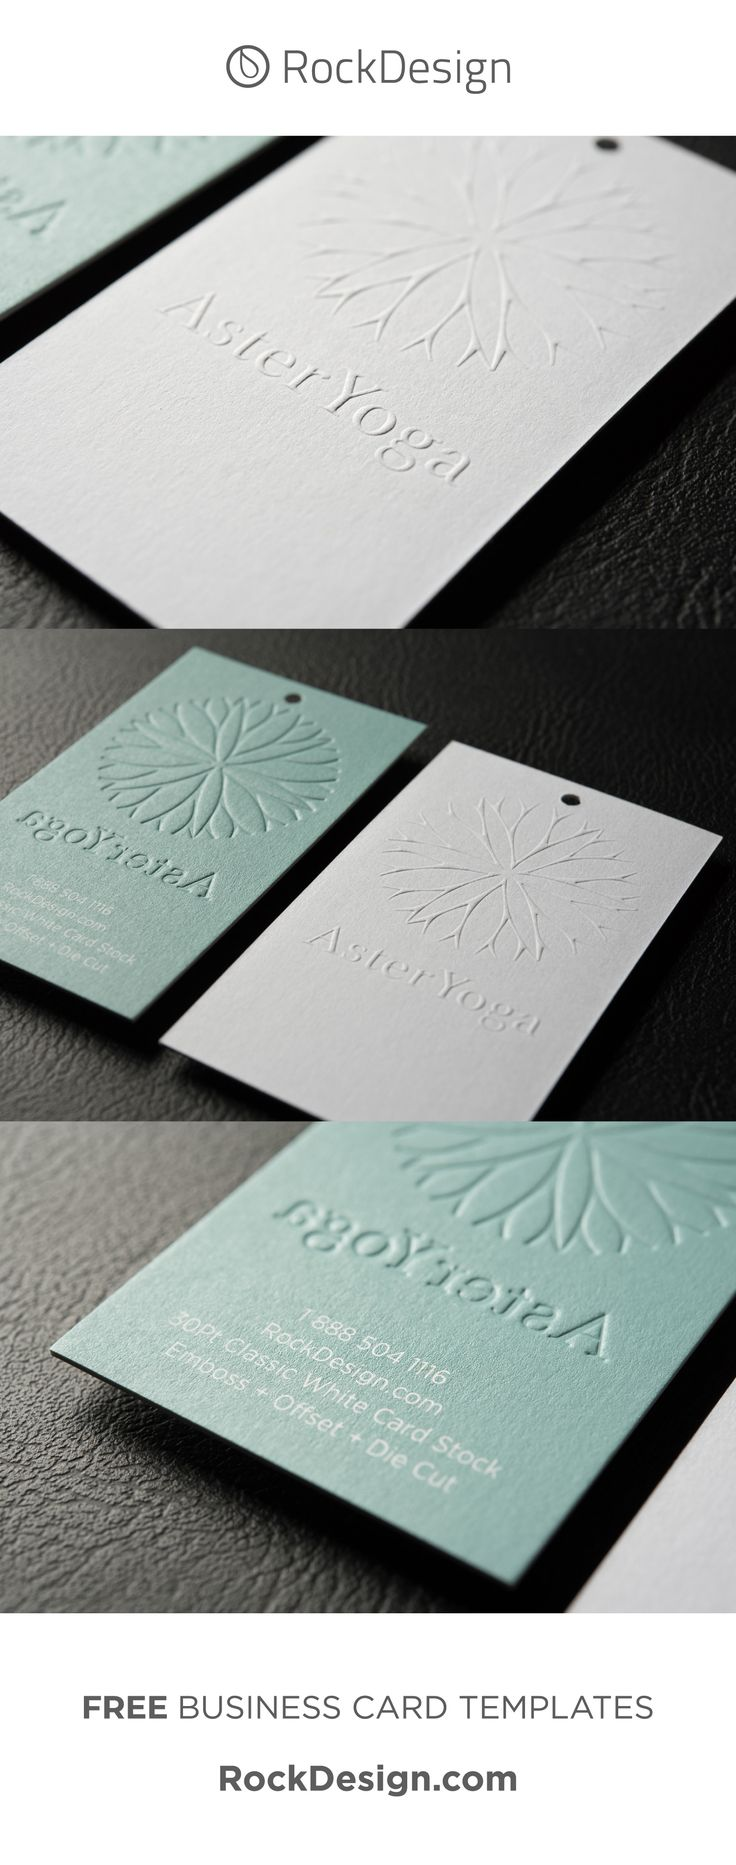 ELEGANT CLASSIC BUSINESS CARD TAG TEMPLATE WITH EMBOSS – ASTER YOGA